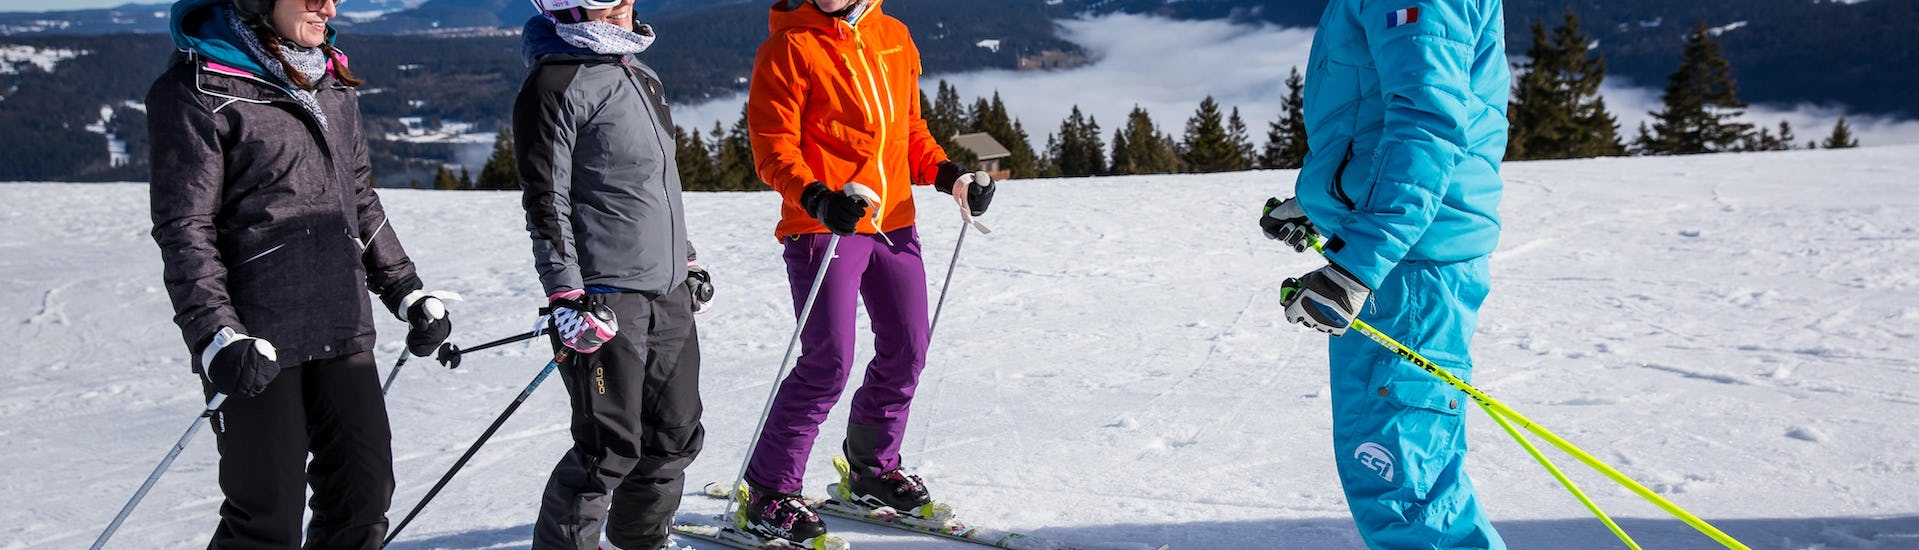 Ski Lessons for Adults - Up to Intermediate - Arc 1800